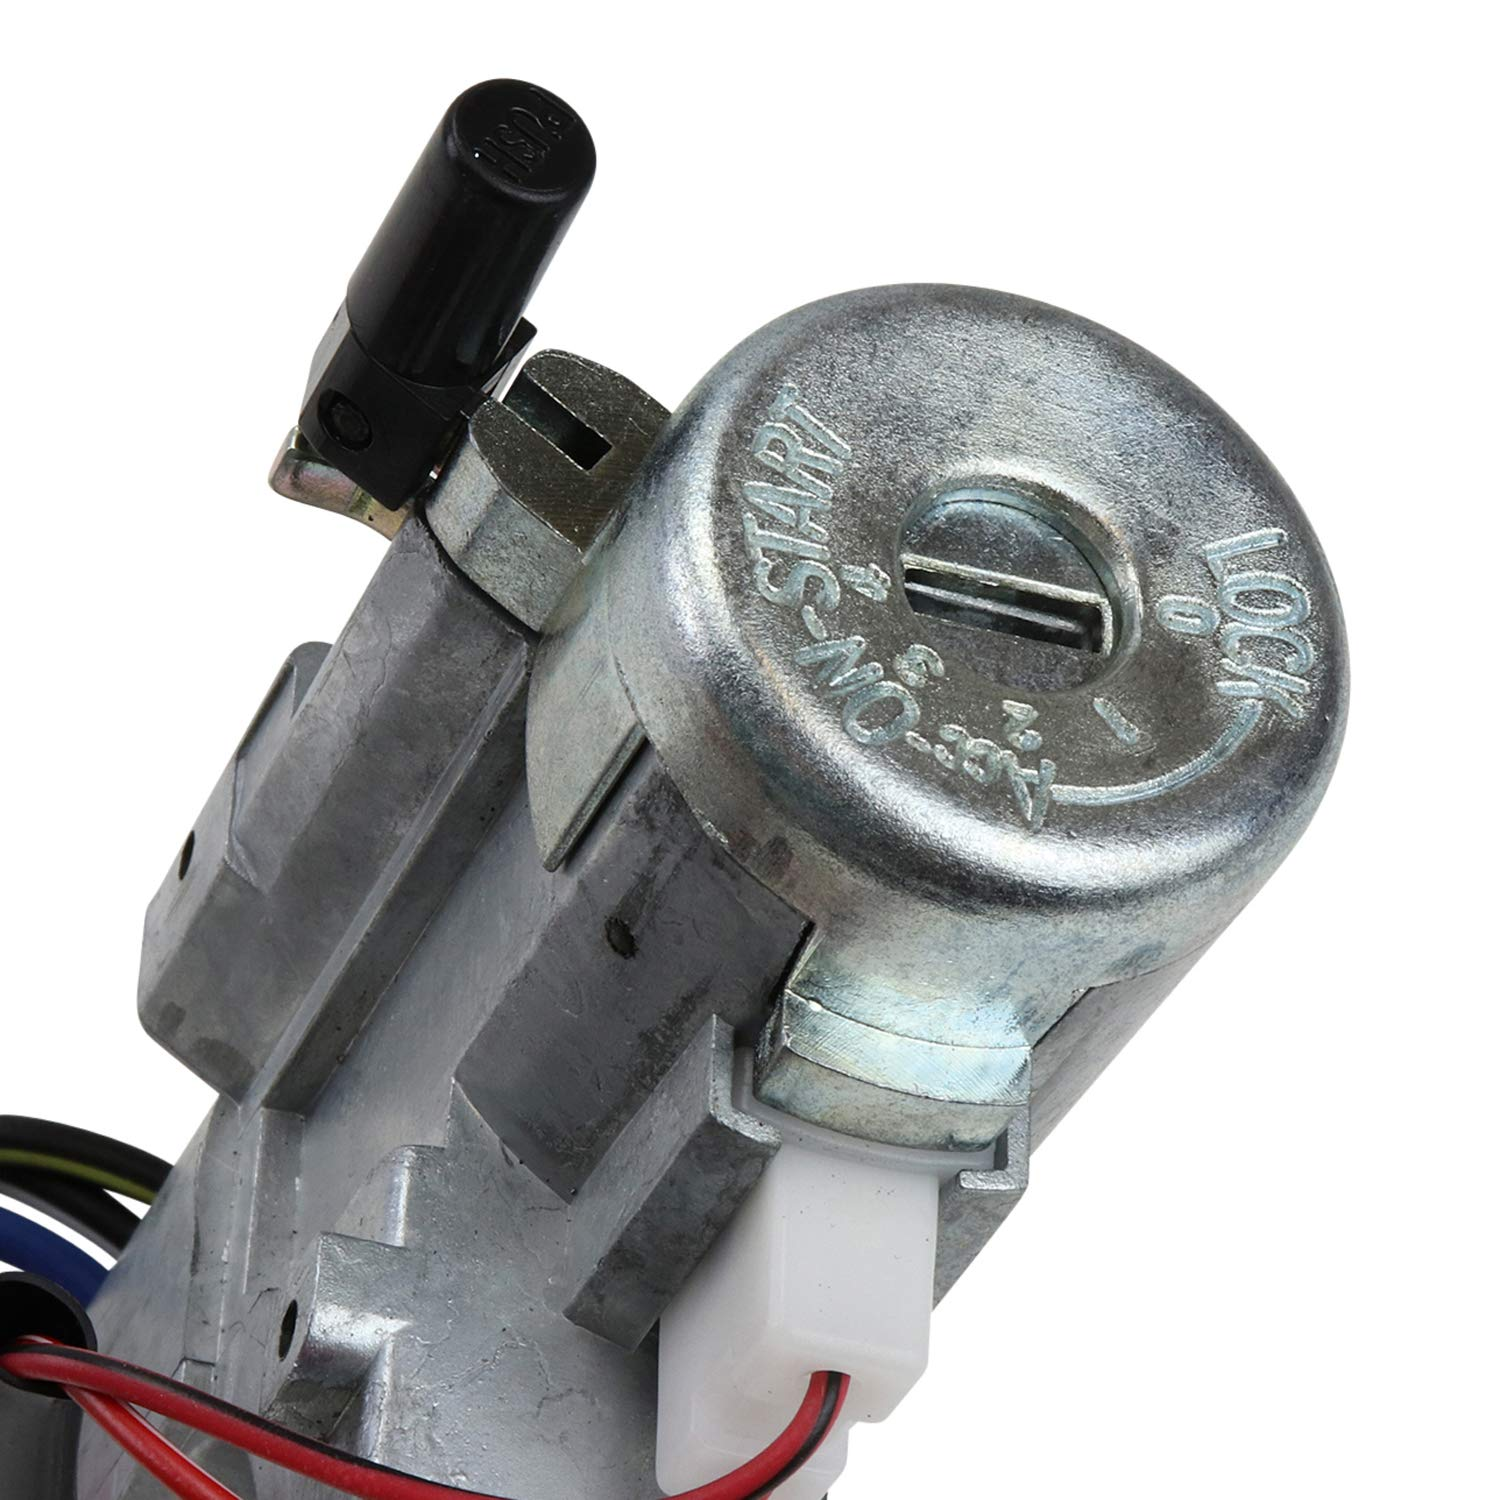 Beck Arnley 201-1737 Ignition Key And Tumbler